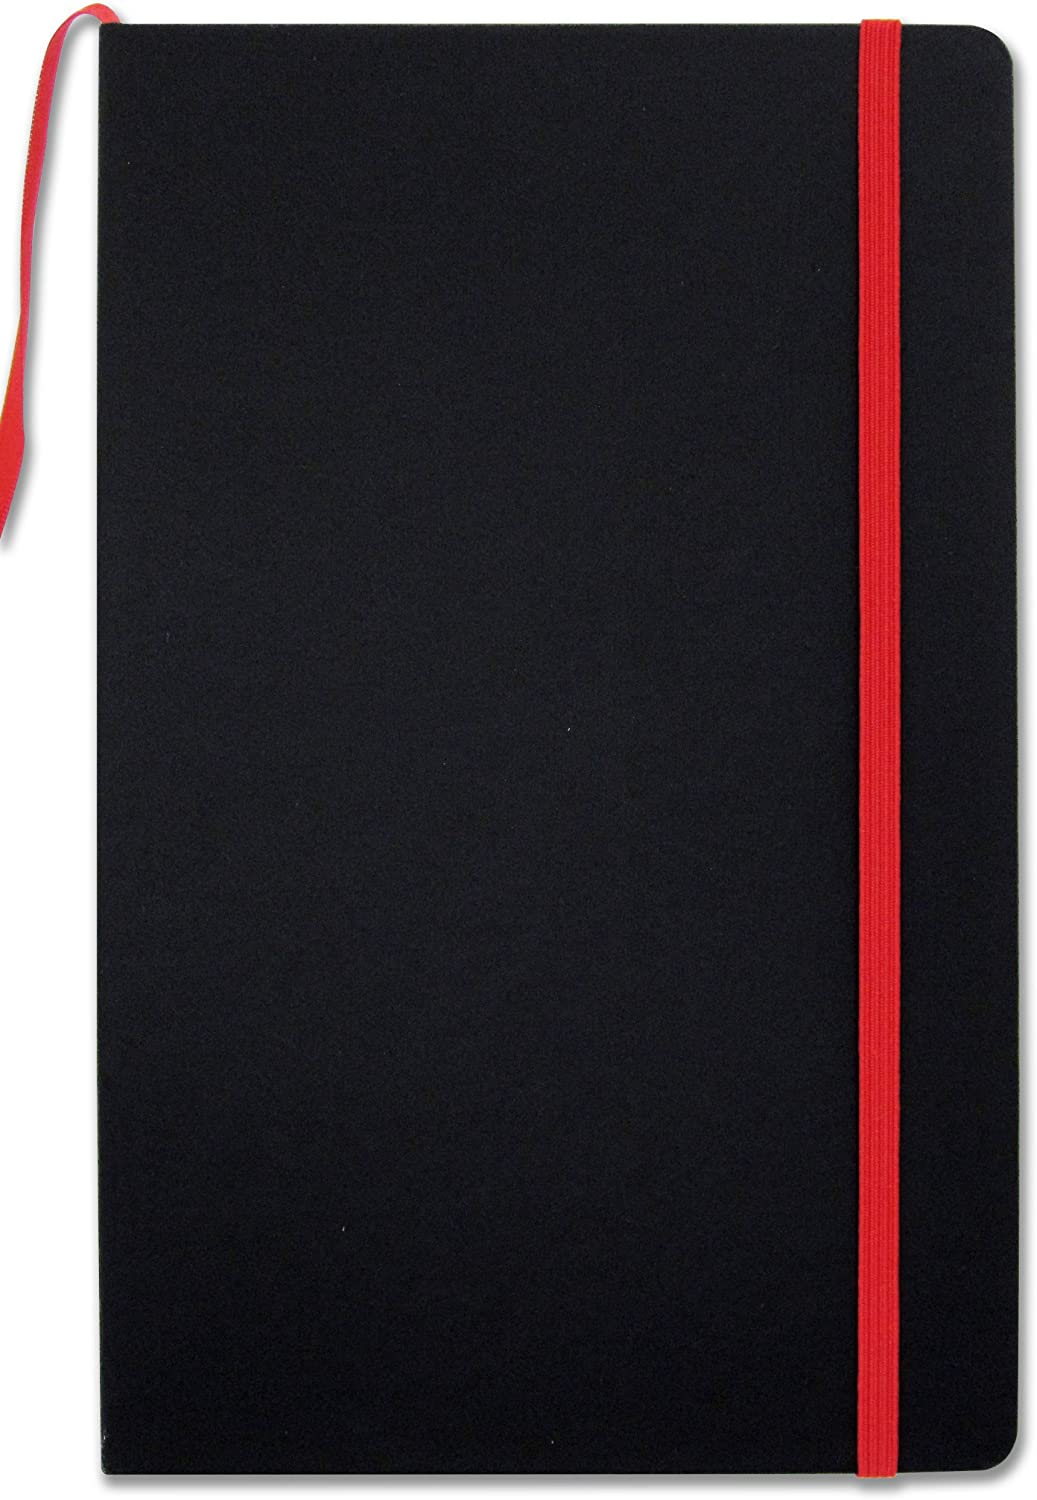 """BookFactory Journal/Writing Notebook/Black Blank Diary/Lined Pages Book - 192 Pages, 5.25"""" x 8.27, Banded Journal, Hardbound, Bookmark (JOU-192-CCS-K)"""